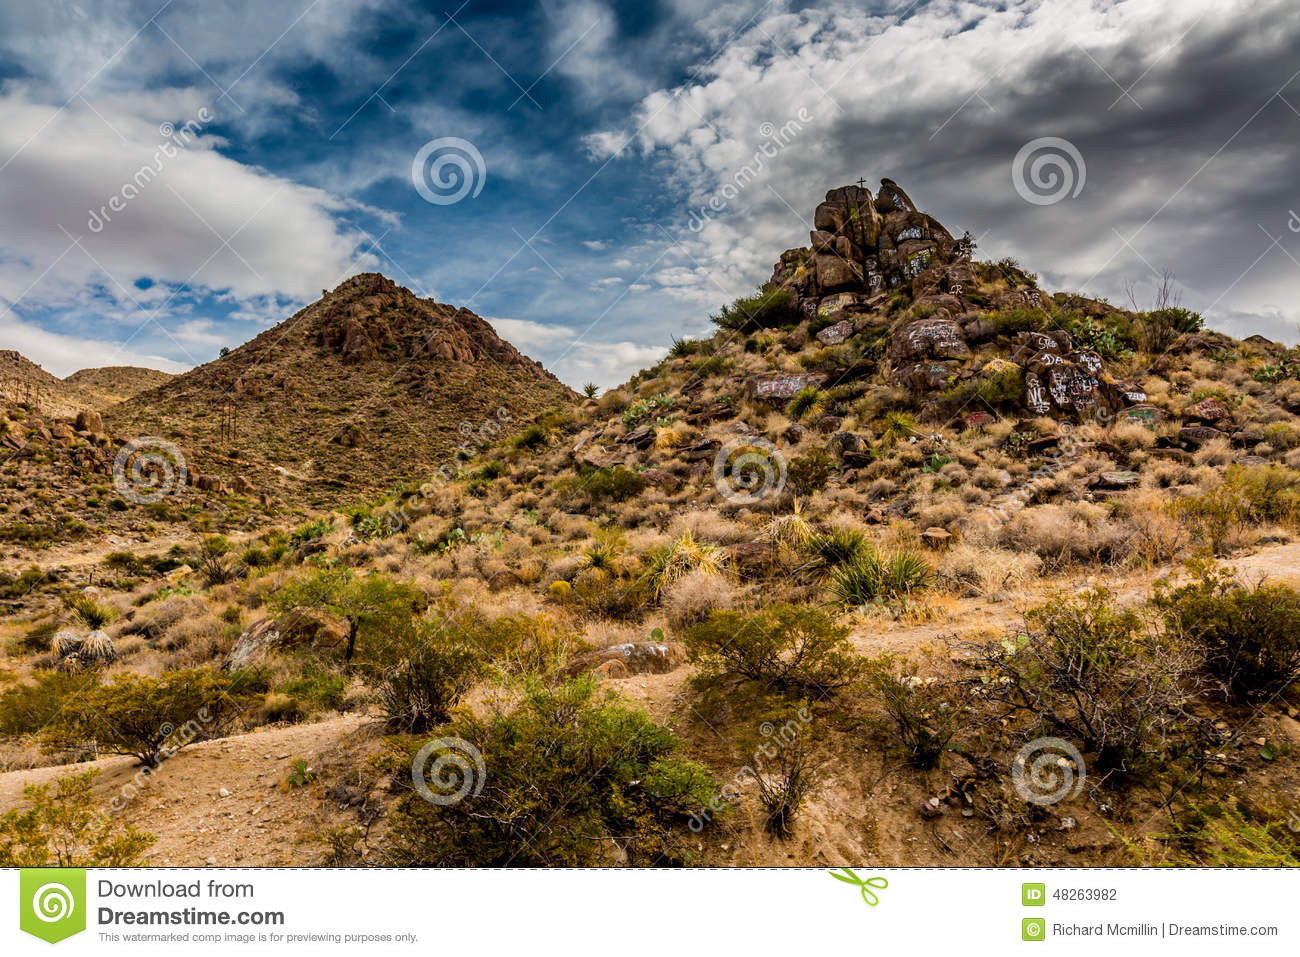 Interesting West Texas Landscape of Desert Area with Rocky Hills and Graffiti.